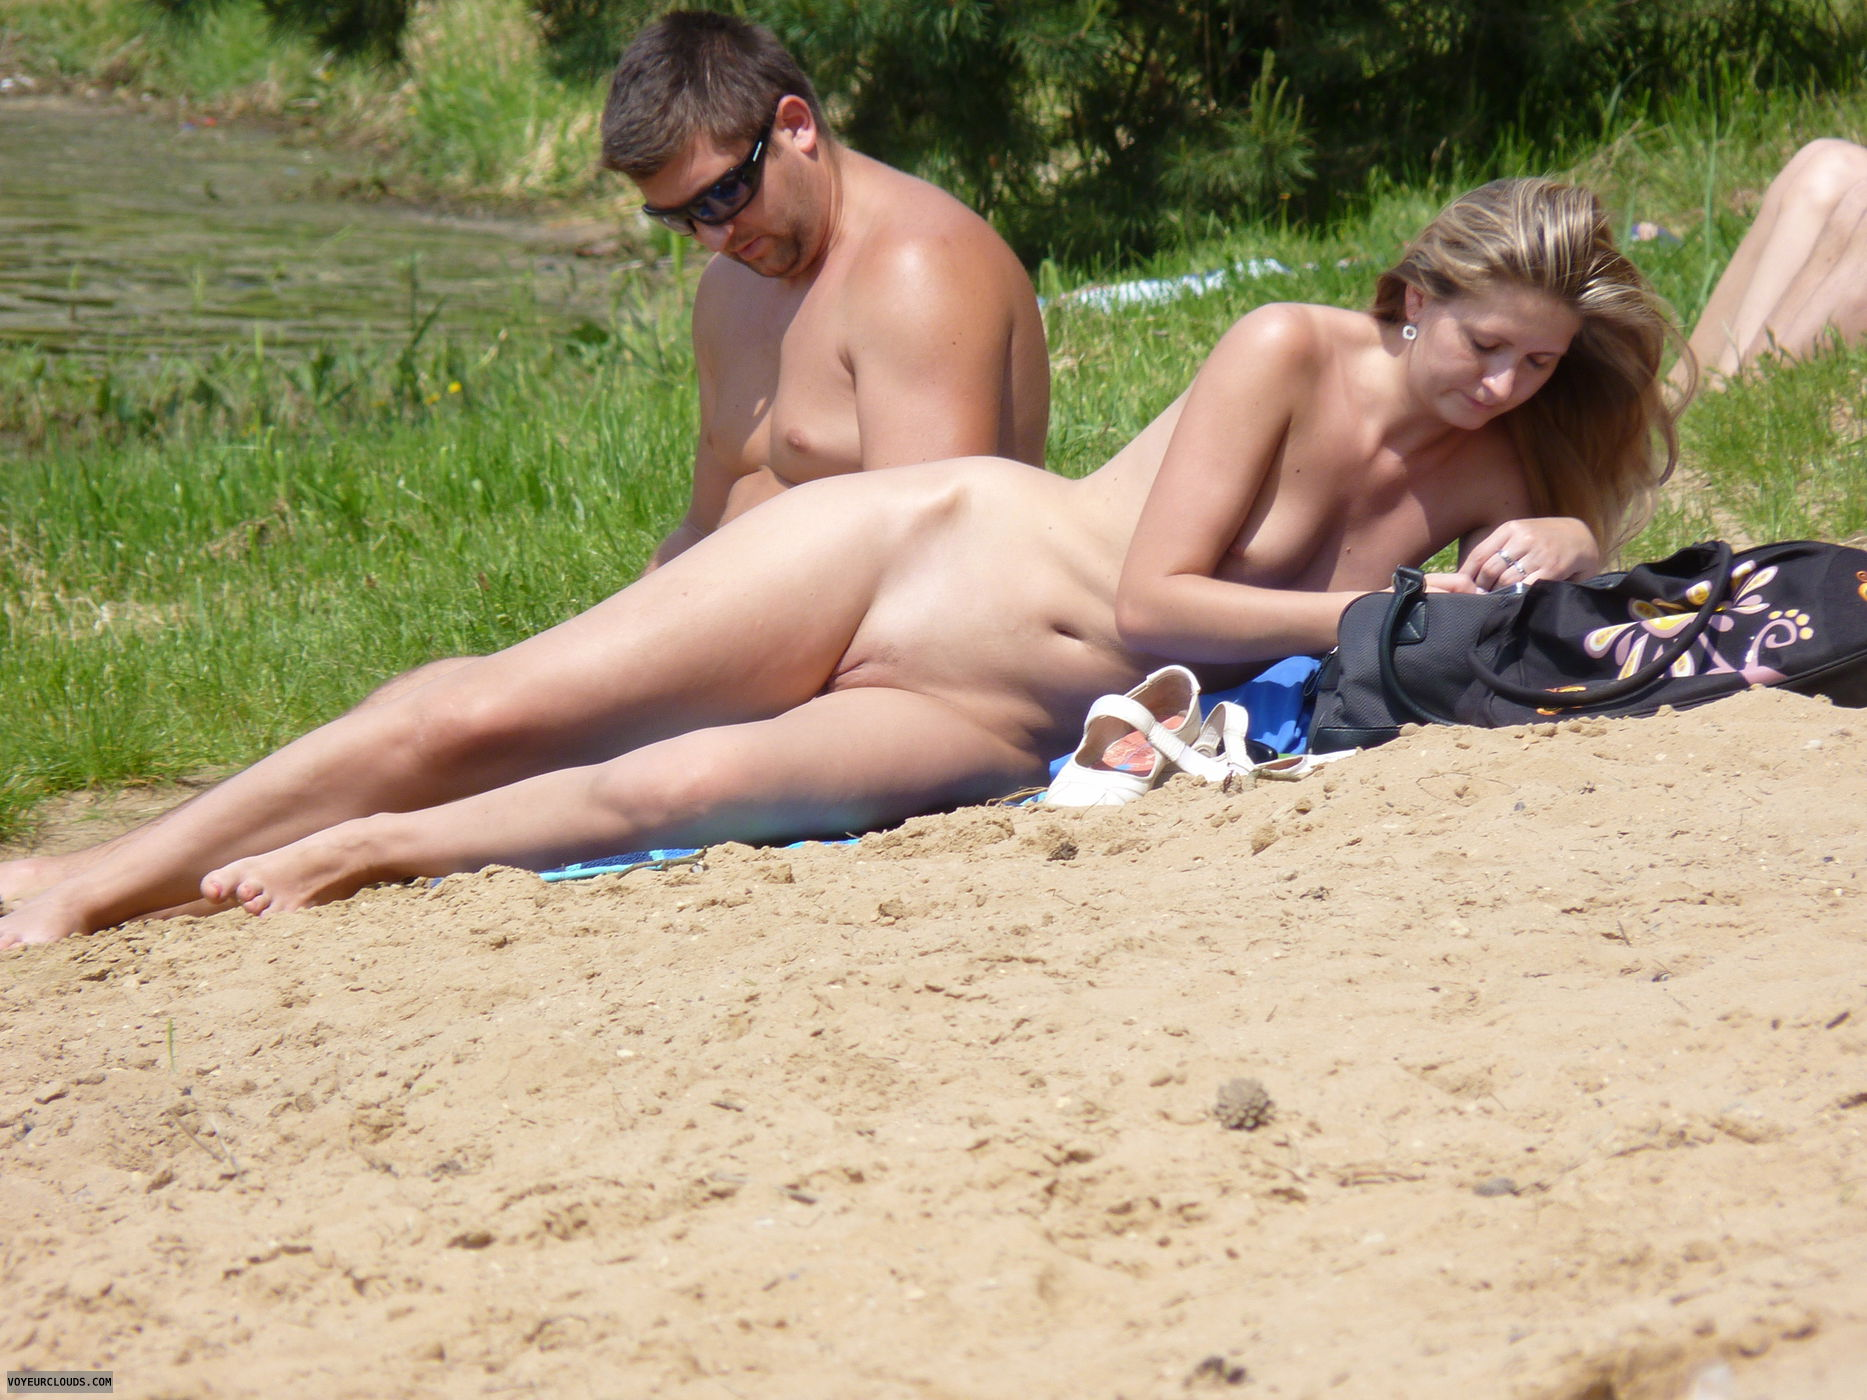 Teen couple outdoor fun gf giving her boobs to bf